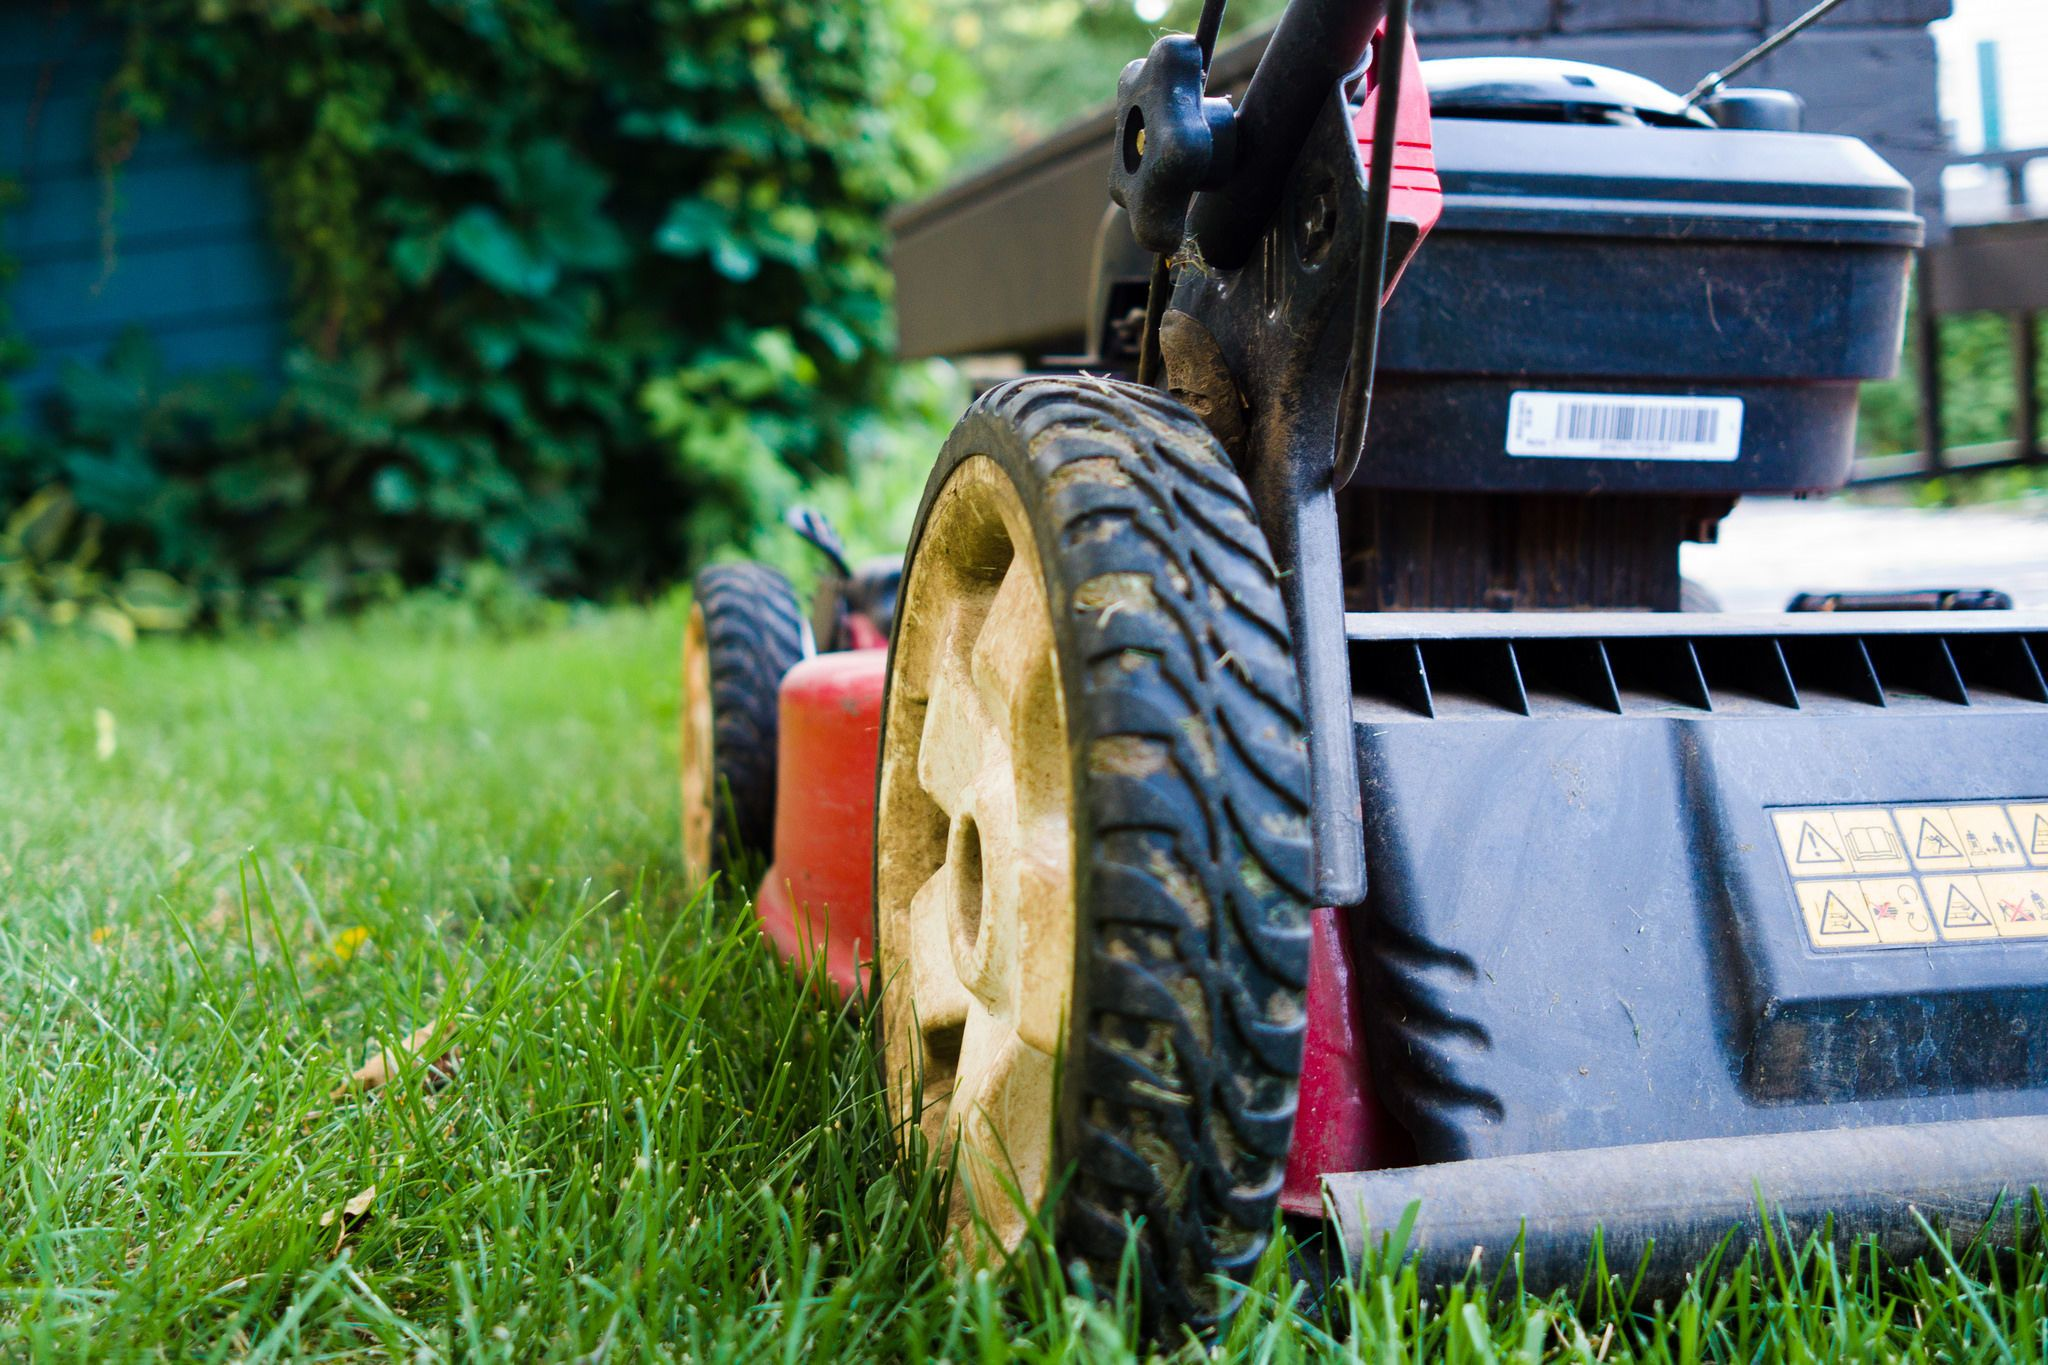 How to Winterize Your Lawn Mower Before You Stow It Away